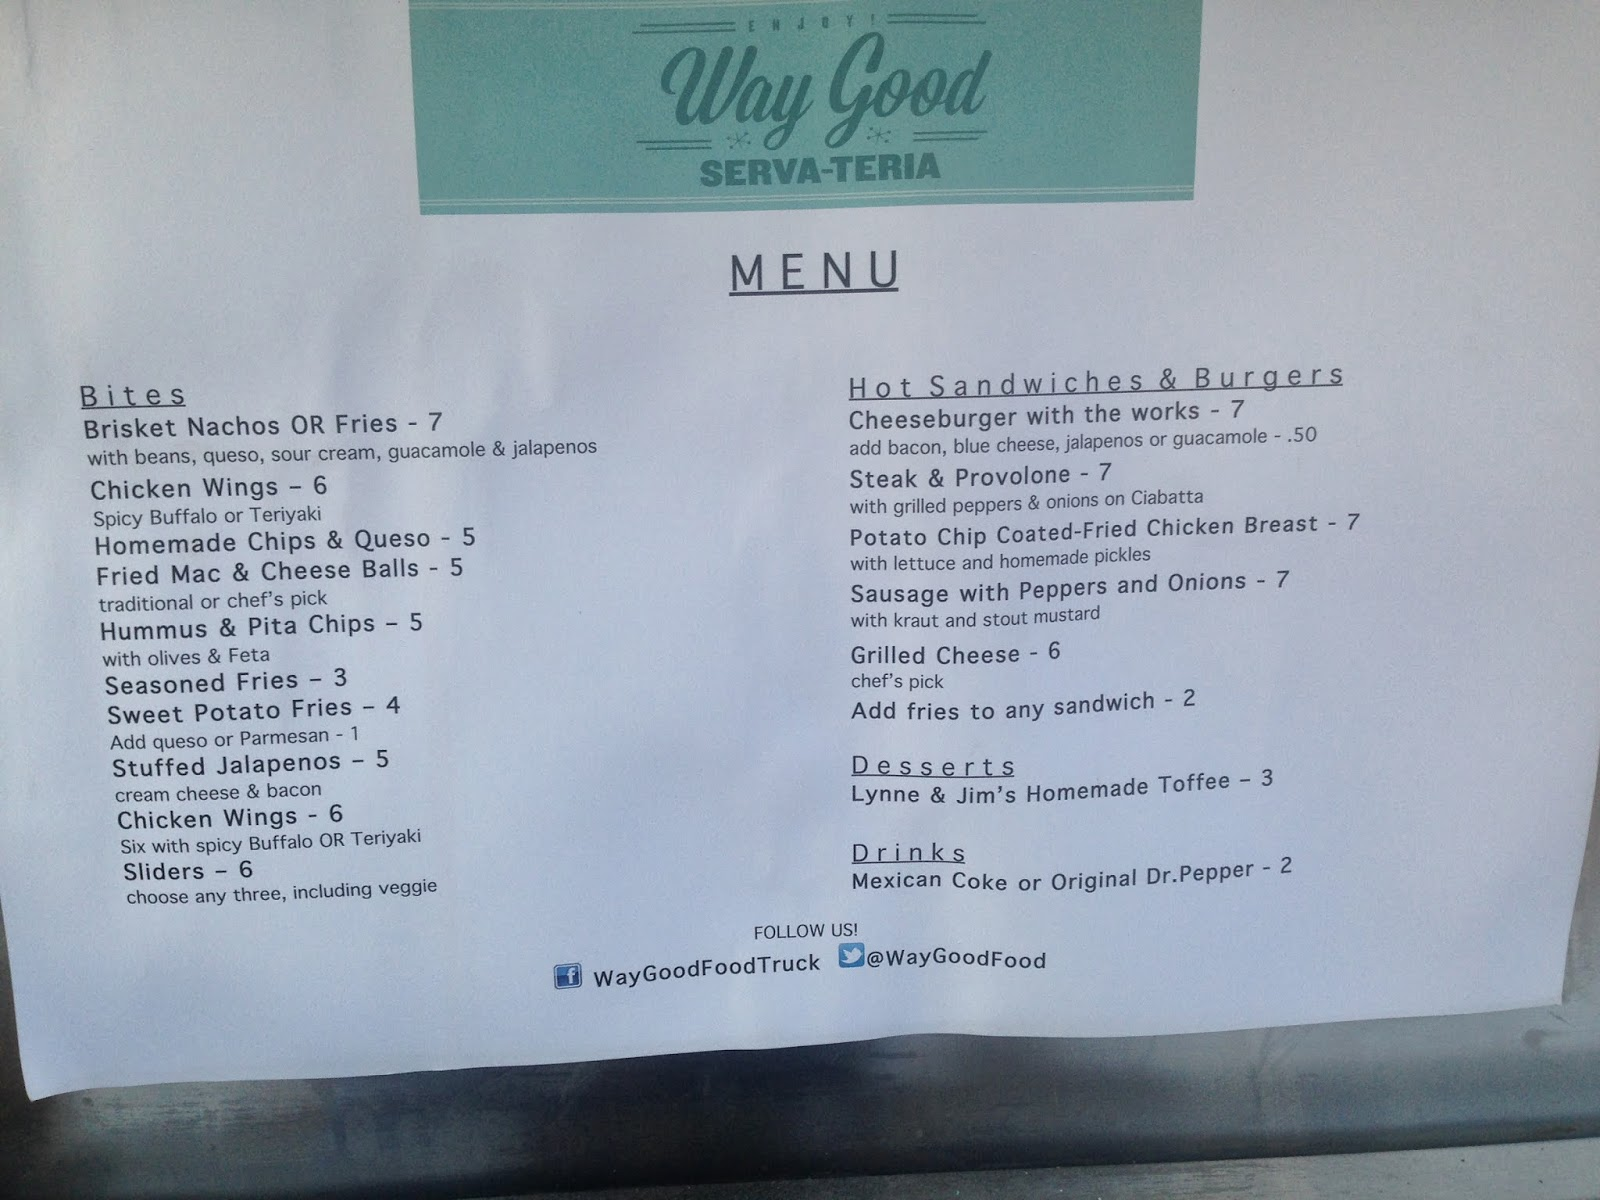 Way Good Serva-Teria Food Truck, Houston TX - Menu